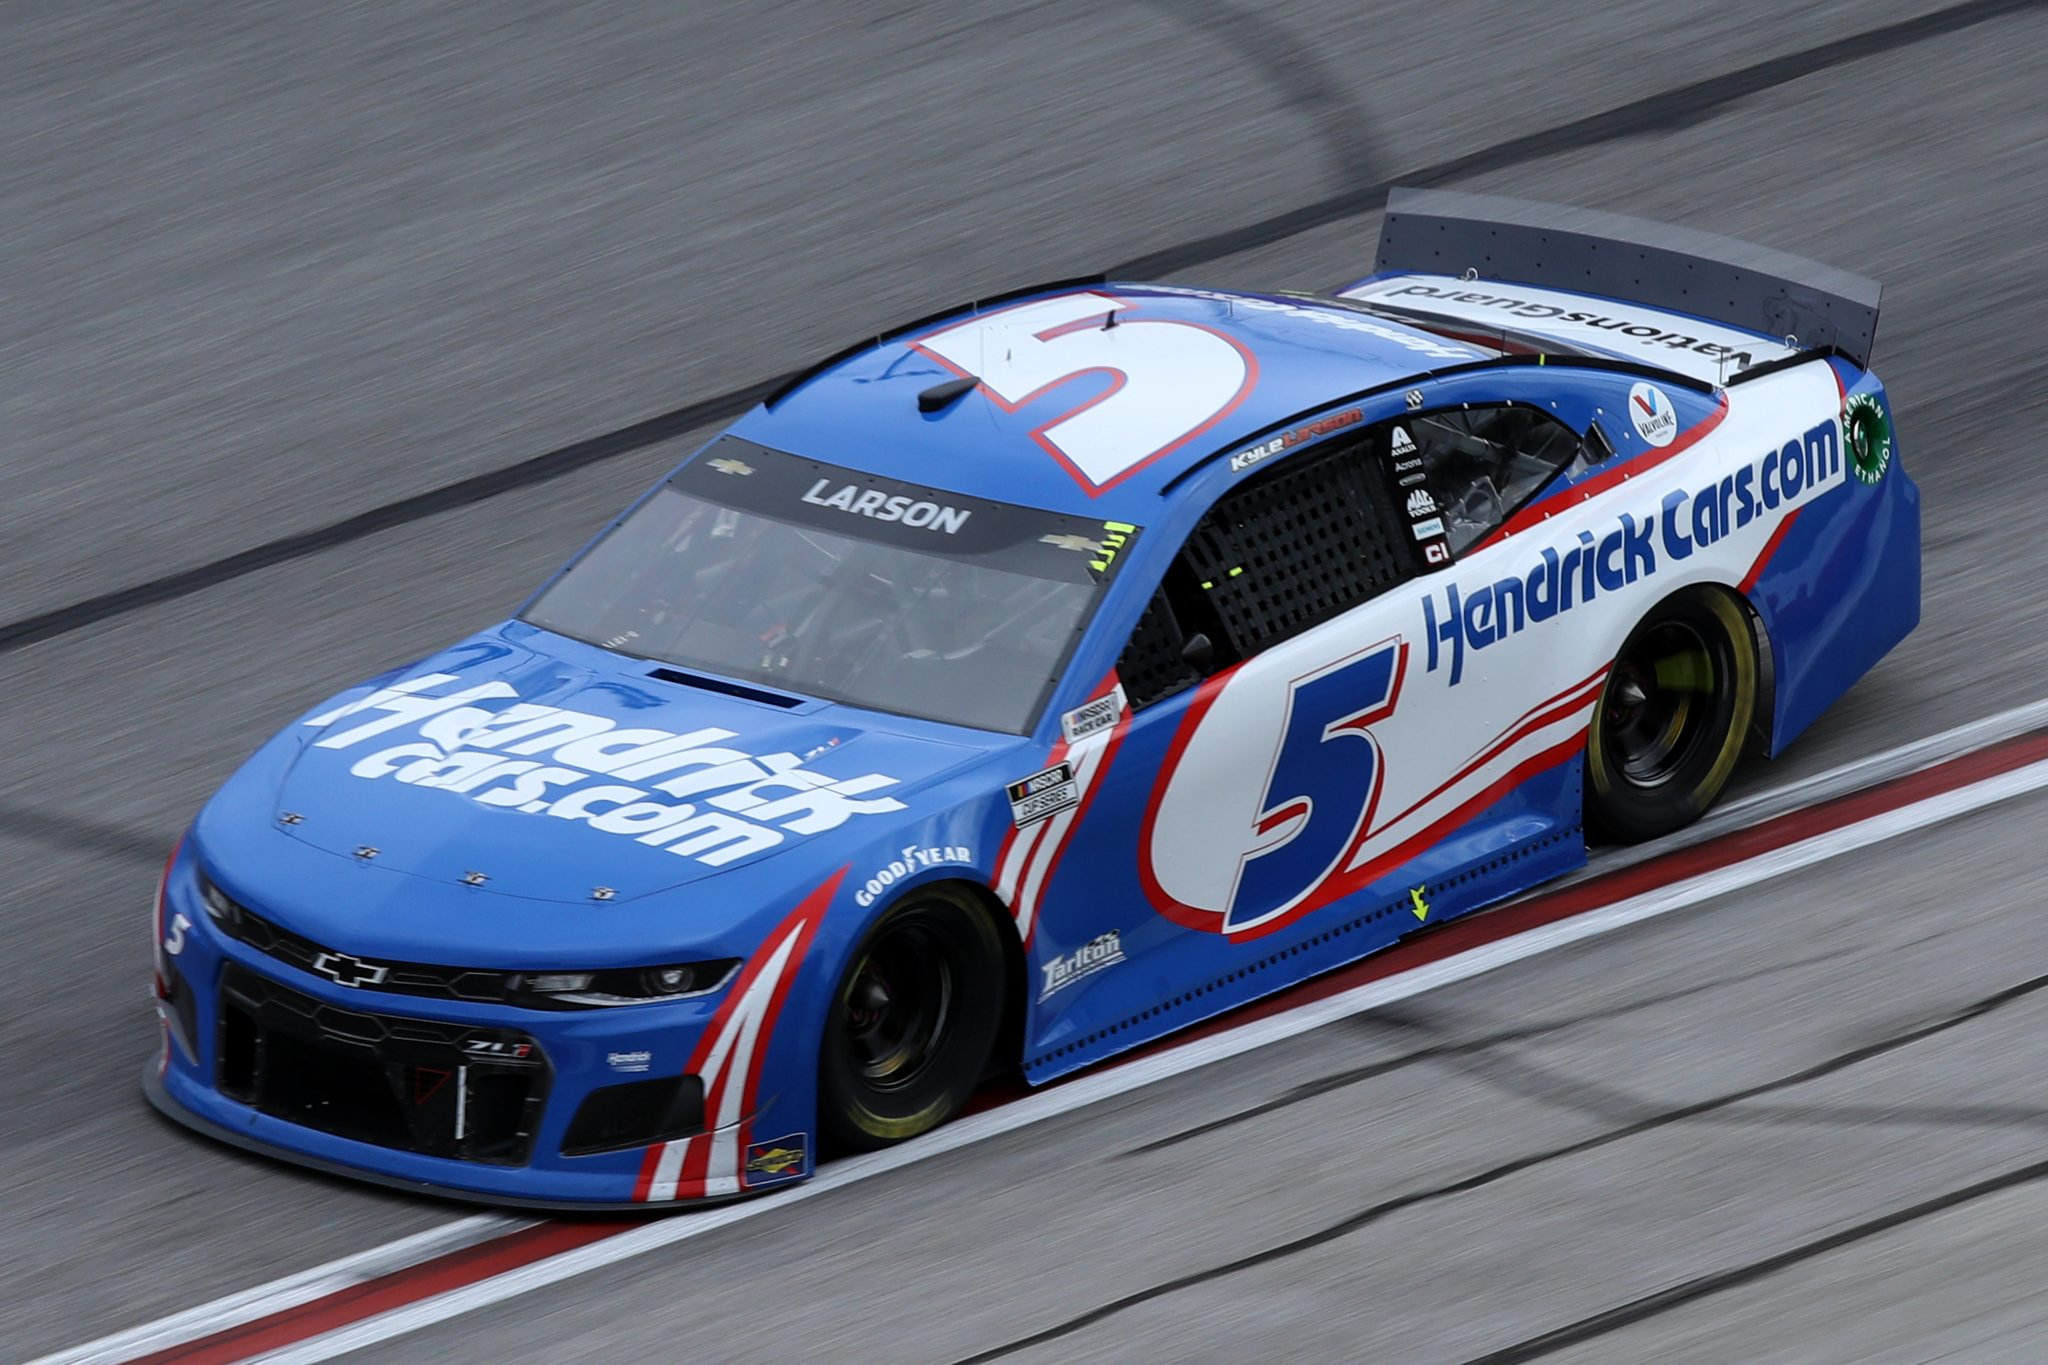 HAMPTON, GEORGIA - MARCH 21: Kyle Larson, driver of the #5 HendrickCars.com Chevrolet, drives during the NASCAR Cup Series Folds of Honor QuikTrip 500 at Atlanta Motor Speedway on March 21, 2021 in Hampton, Georgia. (Photo by Sean Gardner/Getty Images) | Getty Images